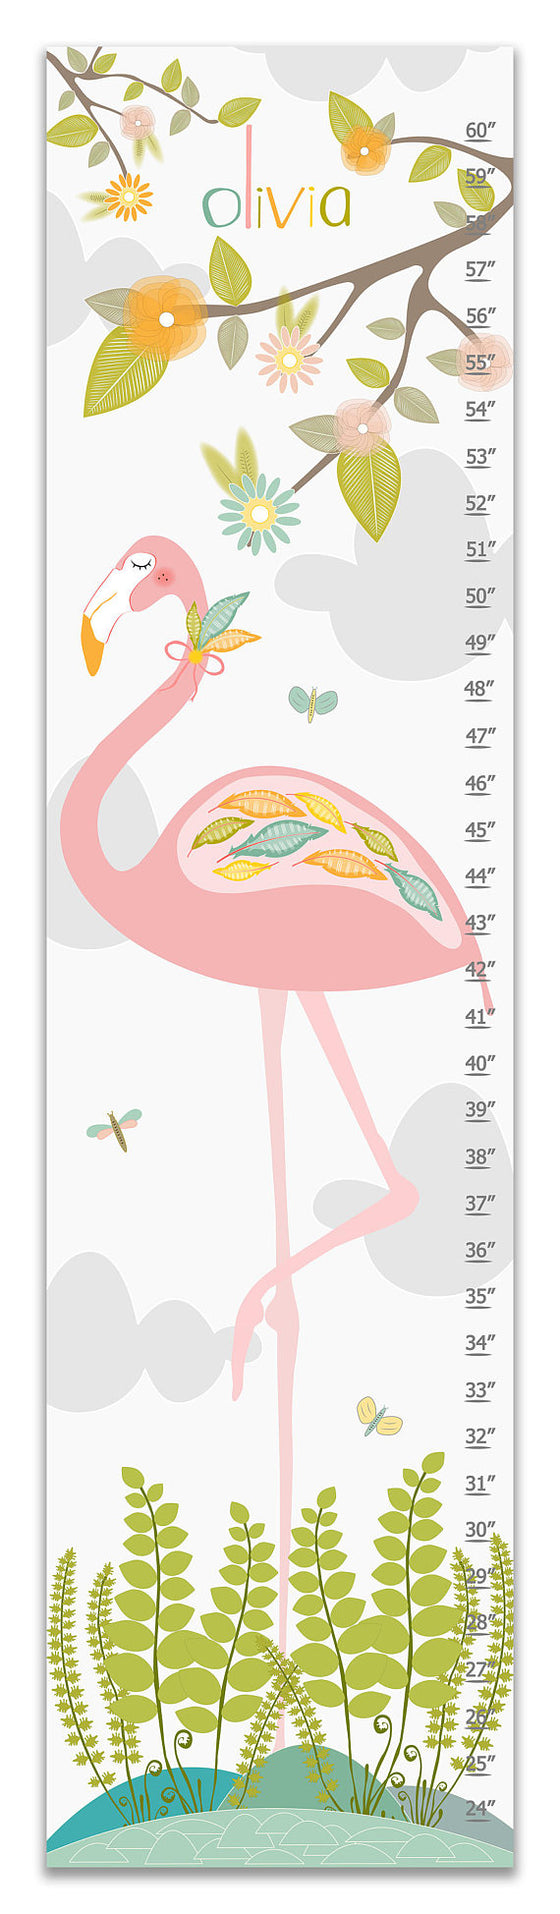 Flamingo Personalized Growth Chart - Nursery Decor - Gifts for Girls